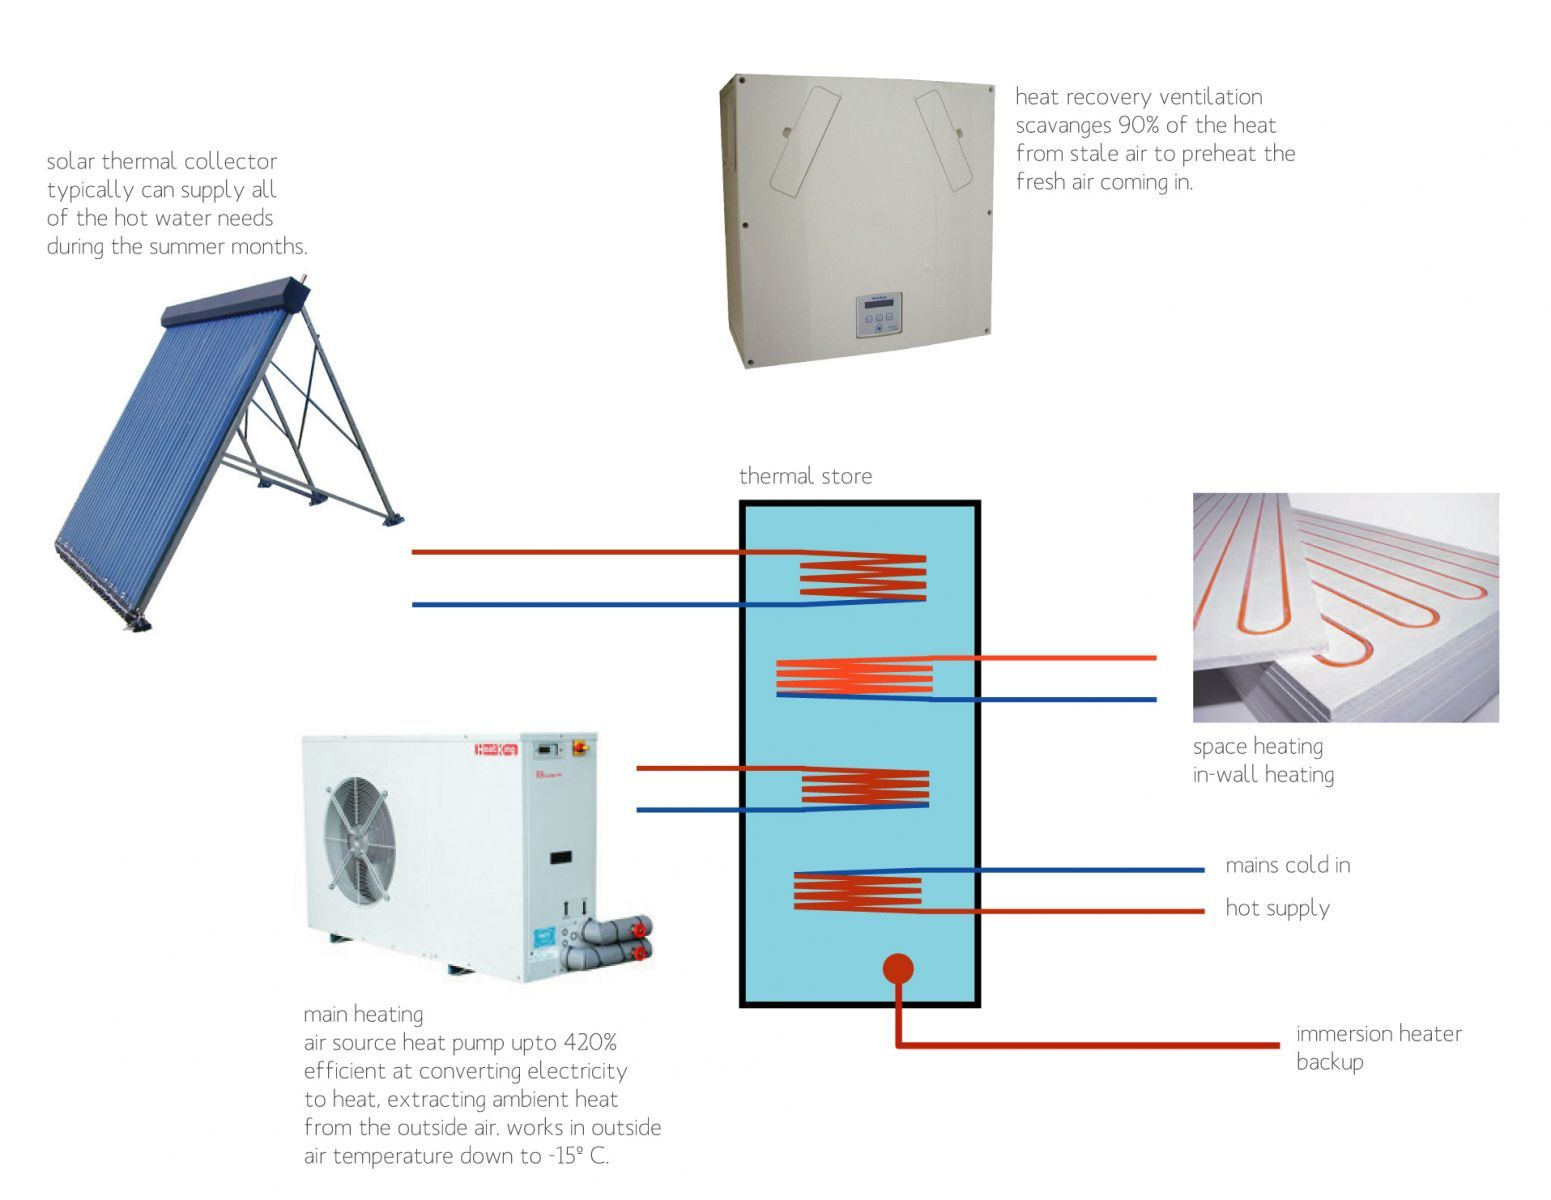 hight resolution of eco heating system diagram jpg 1551 1200